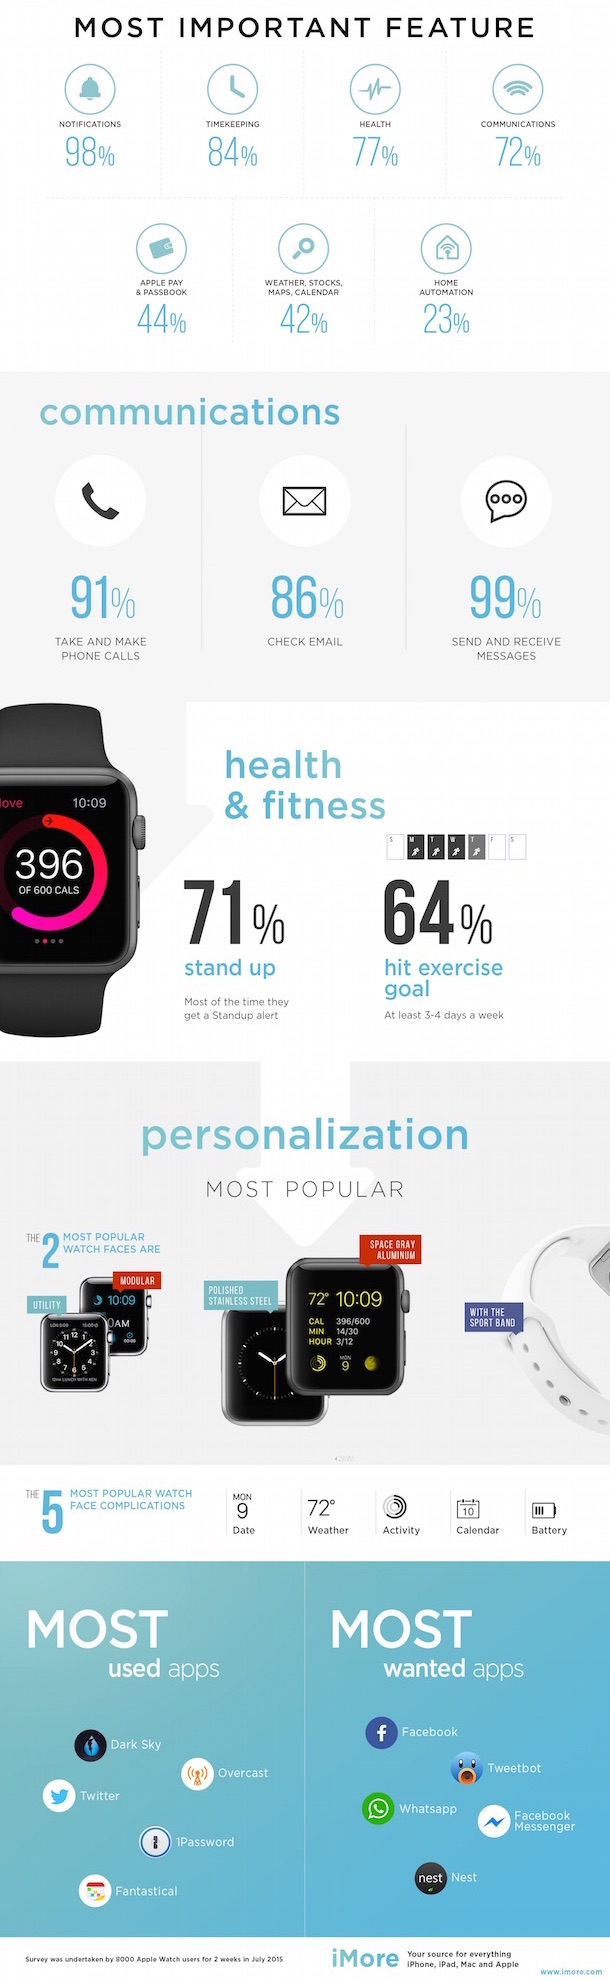 apple_watch_umfrage_imore2